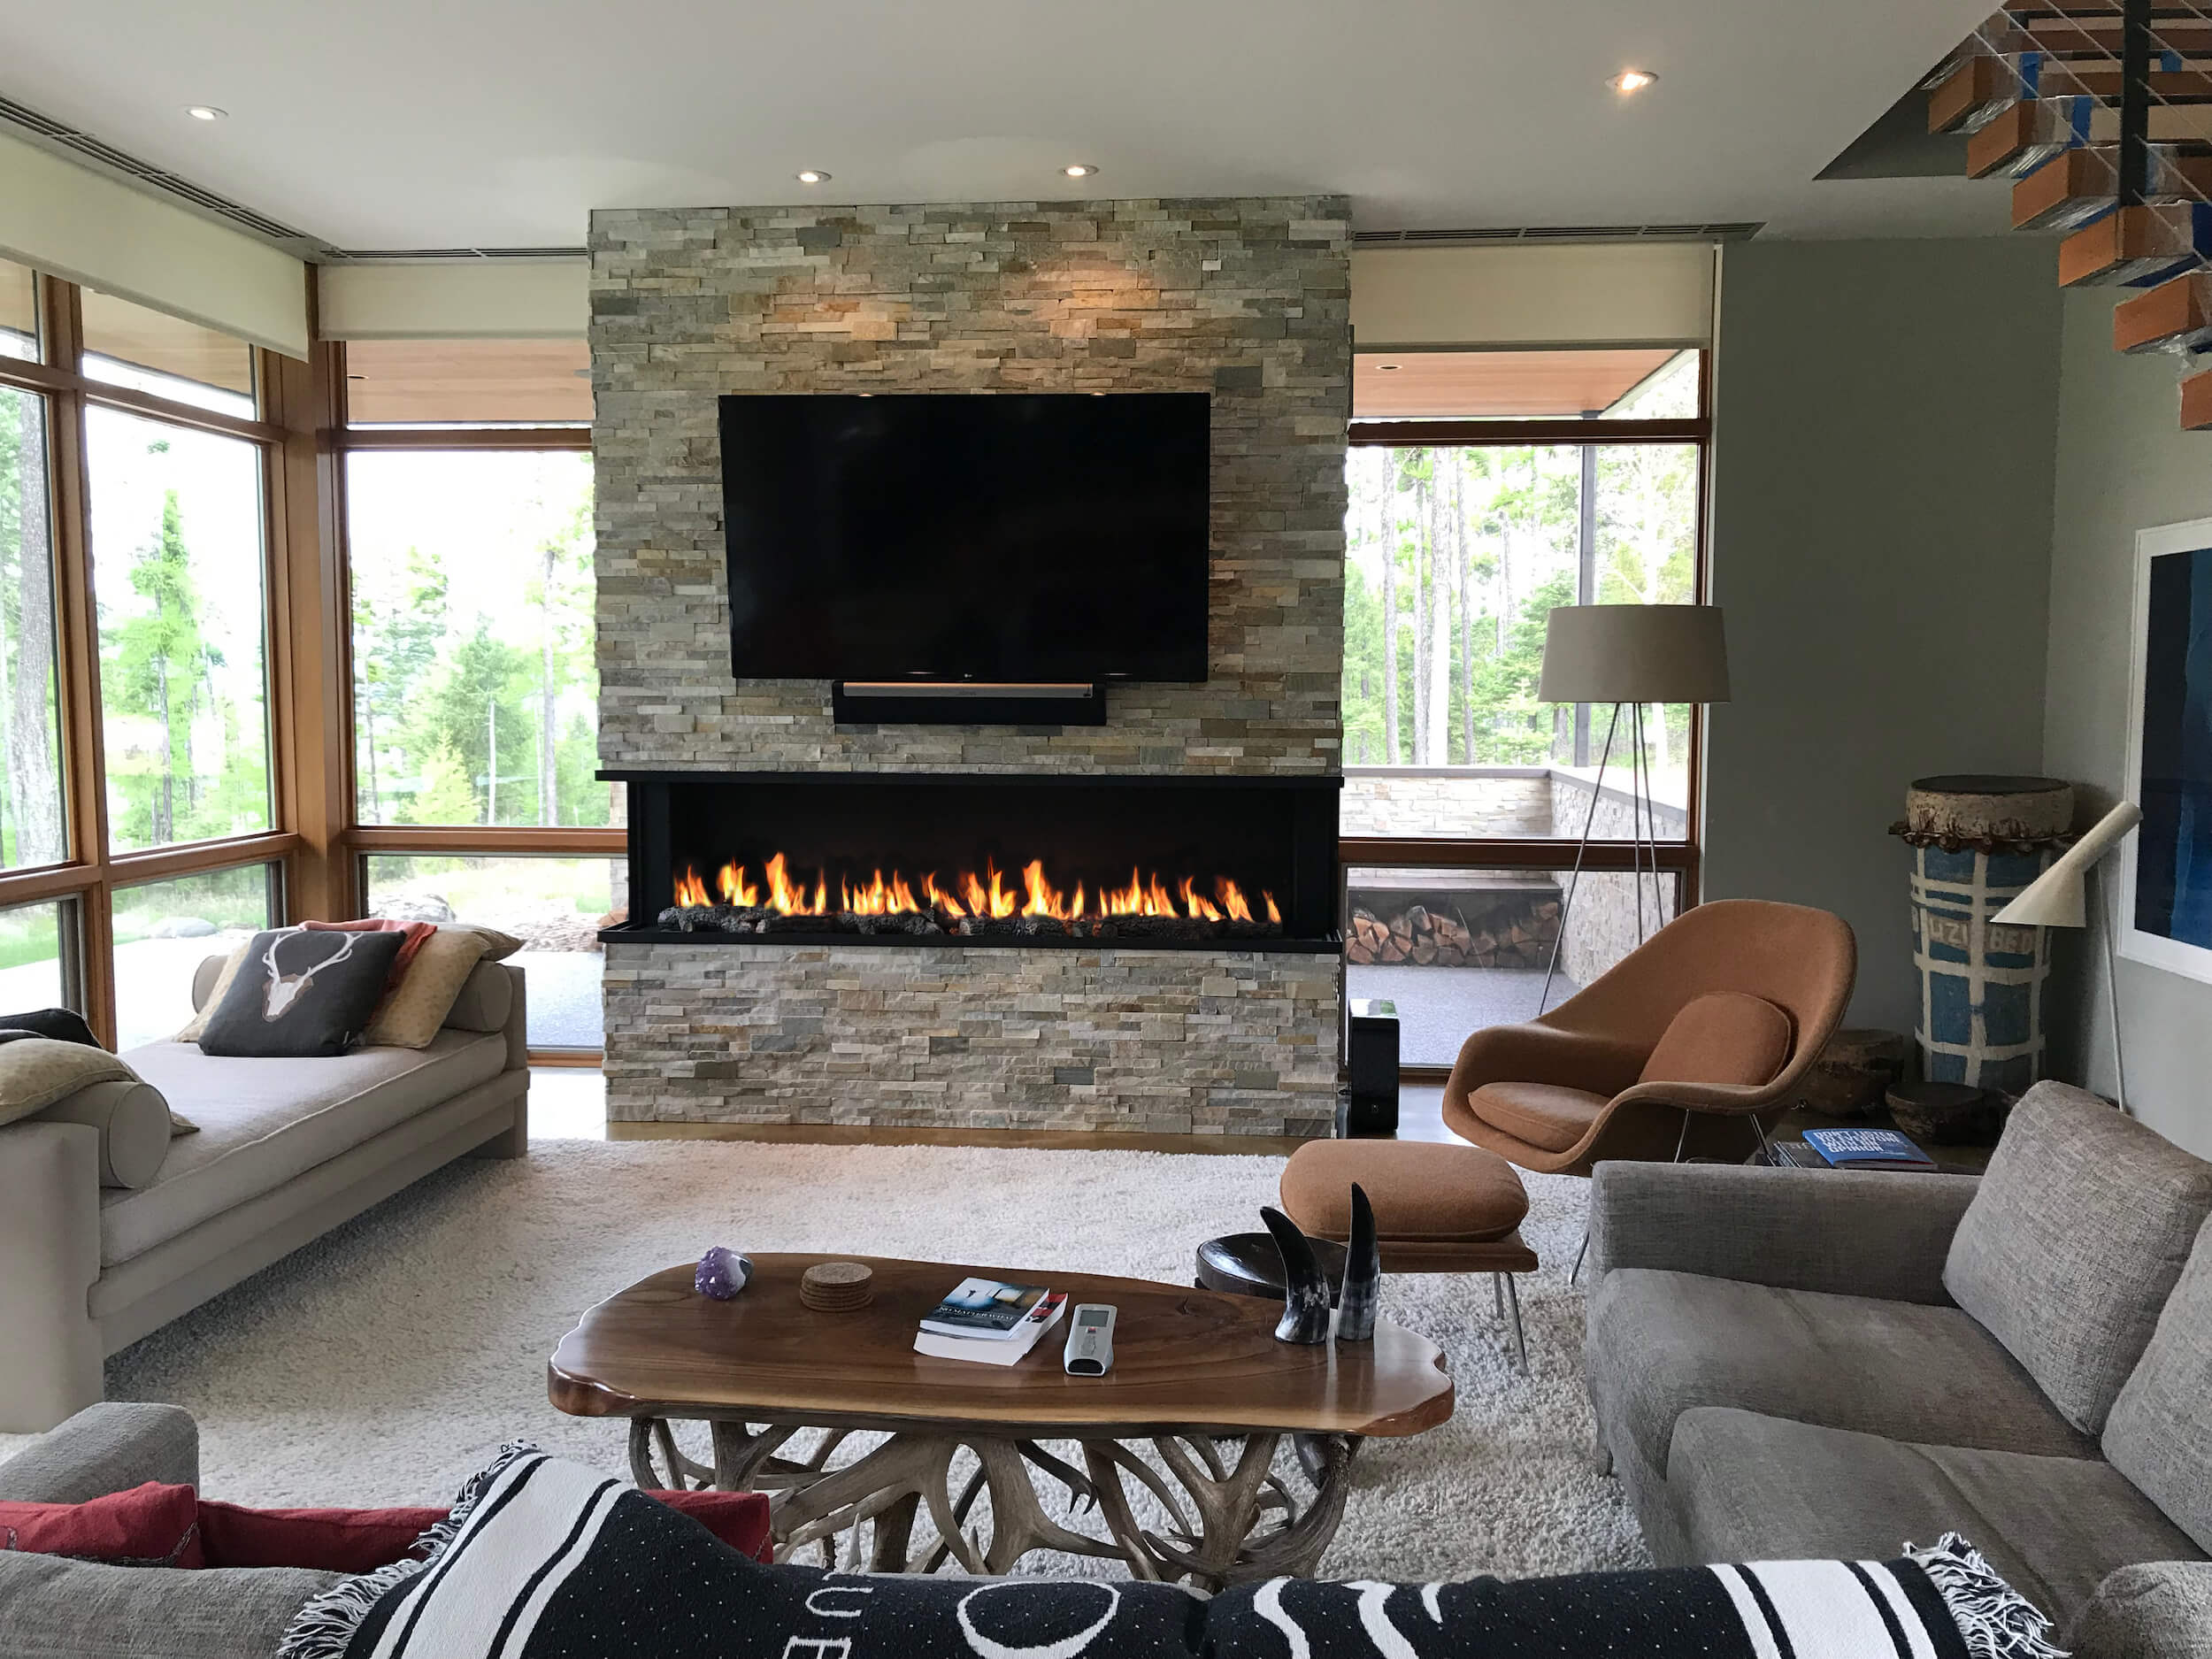 Acucraft Custom Gas Open Panoramic Fireplace with Log Set2